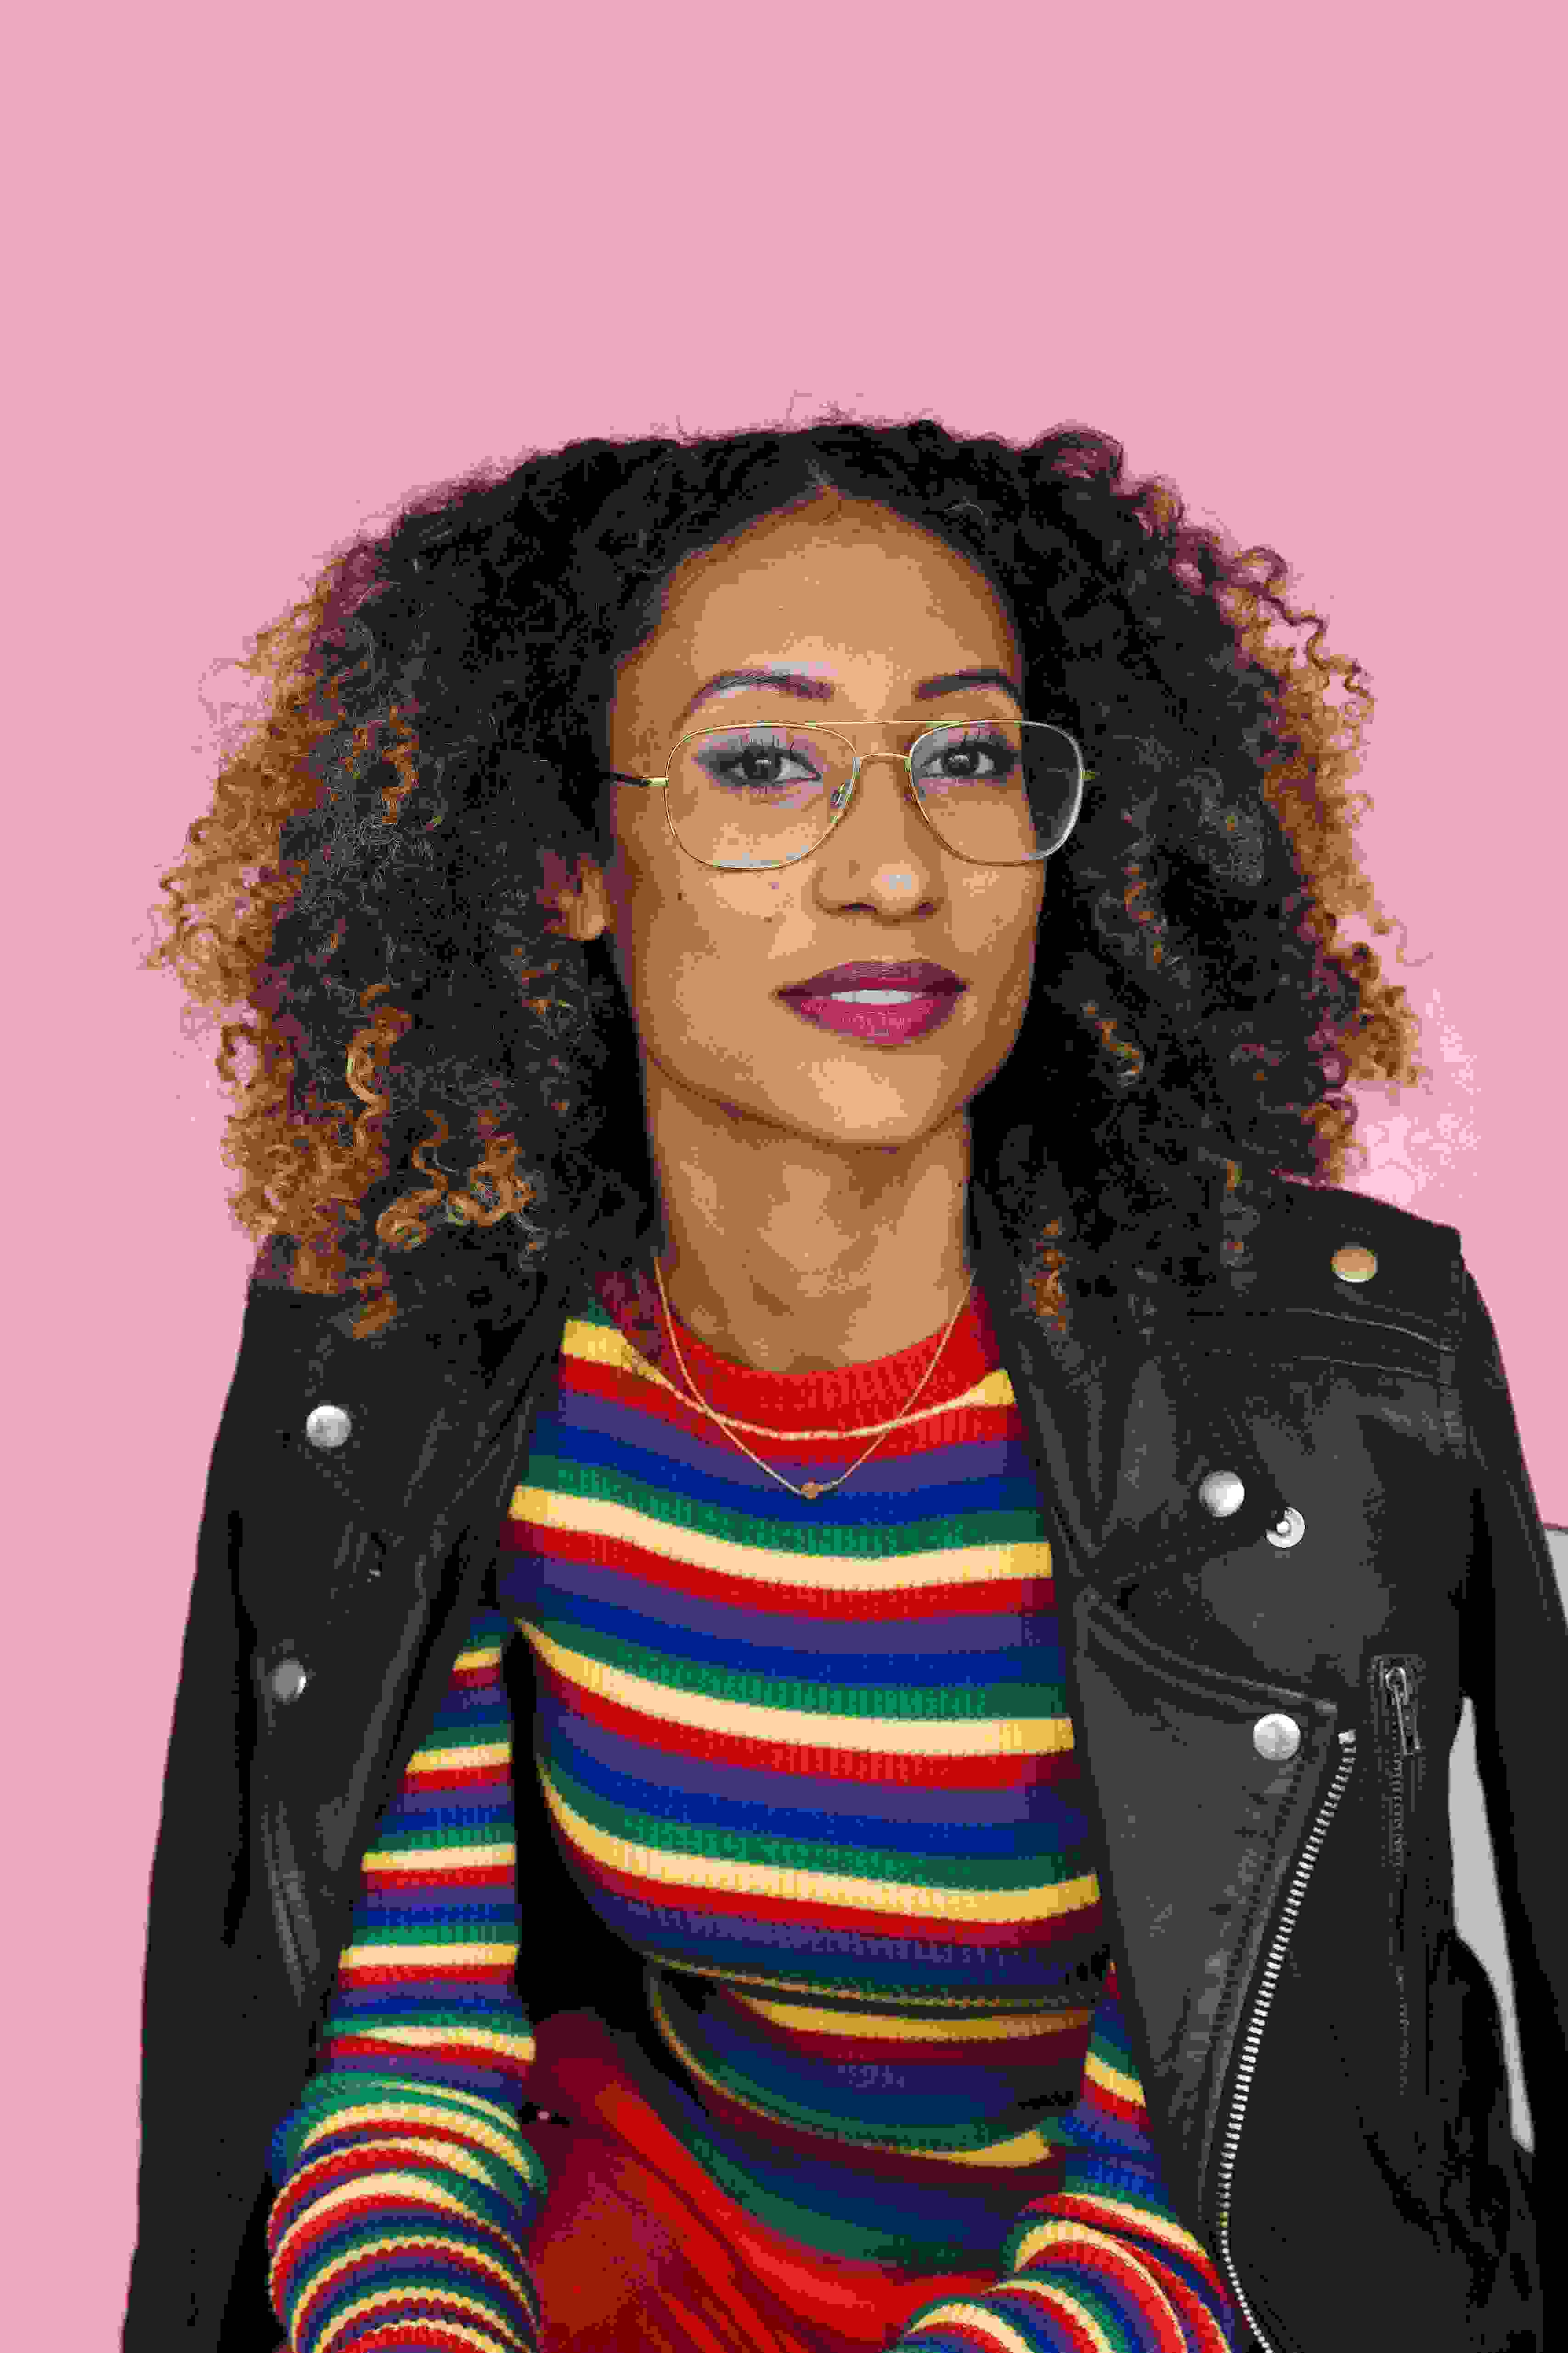 Elaine Welteroth: On Editing Teen Vogue